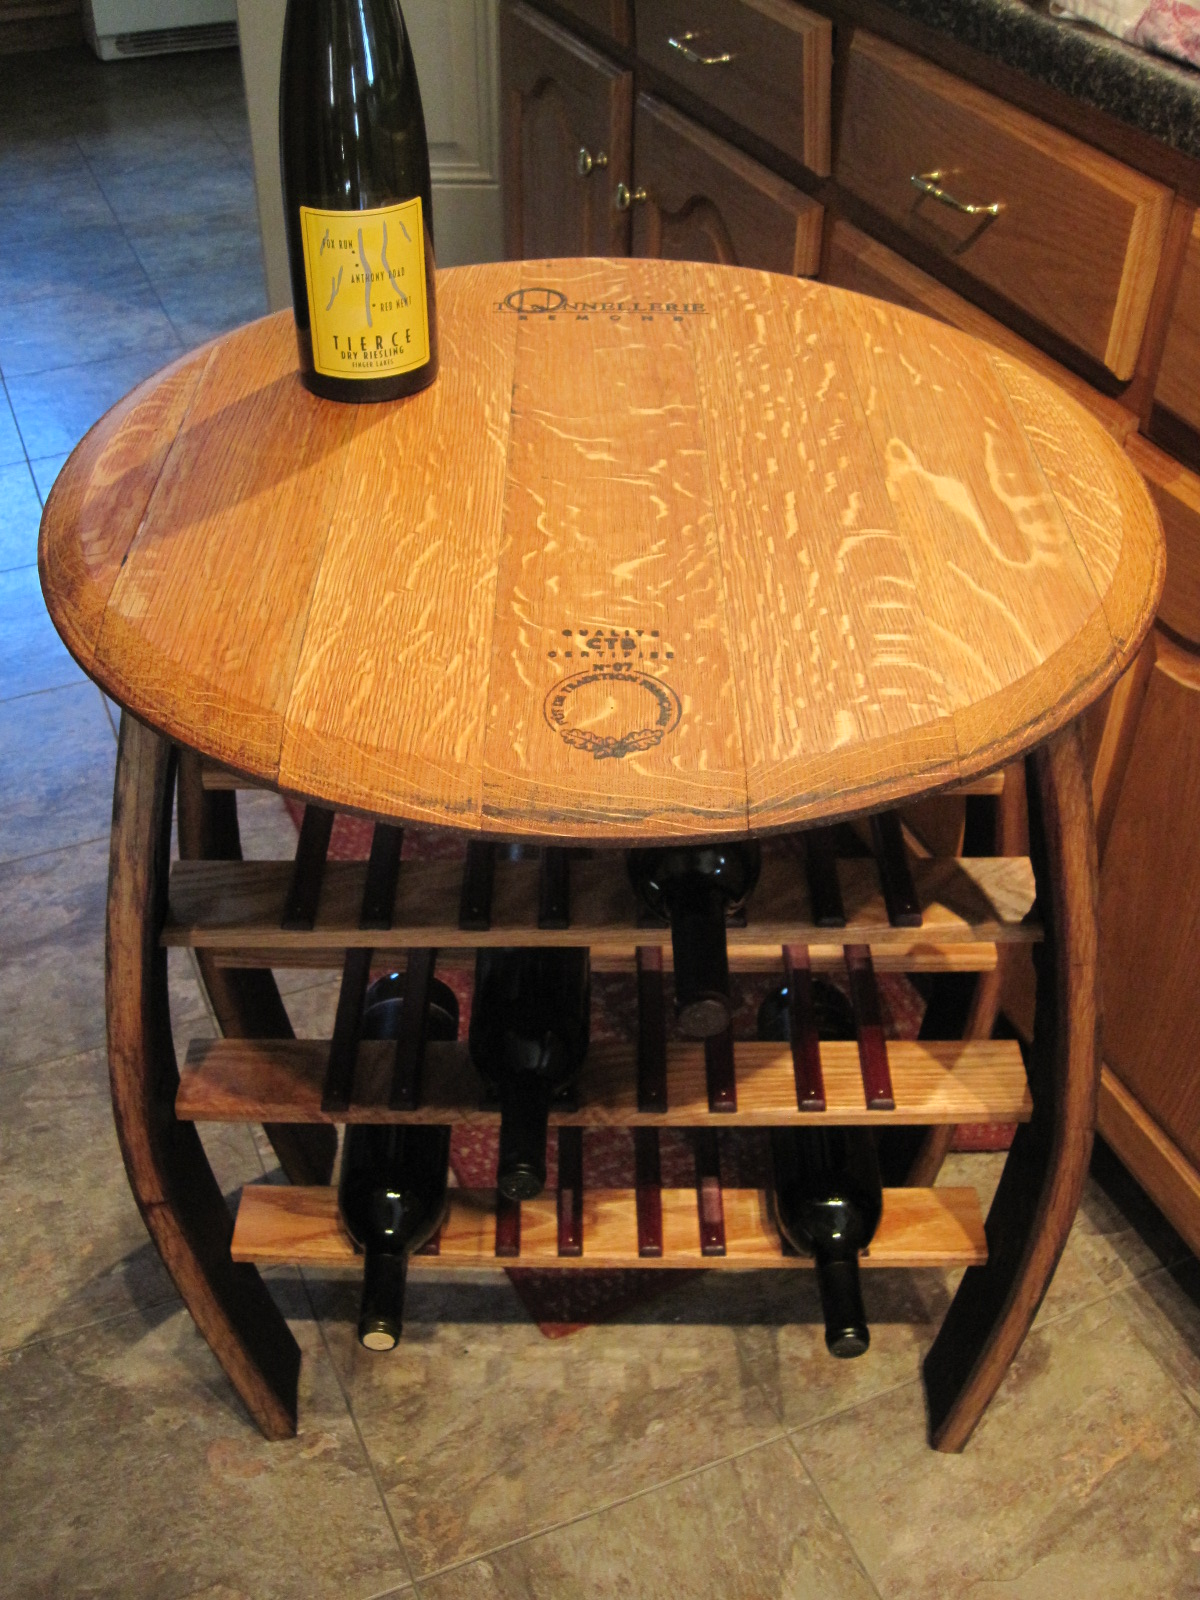 Teal Custom Wine Barrel Furniture Custom Wine Barrel Furniture My Fingerlakesny Wine Barrel Table Storage Wine Barrel Table Chairs houzz 01 Wine Barrel Table